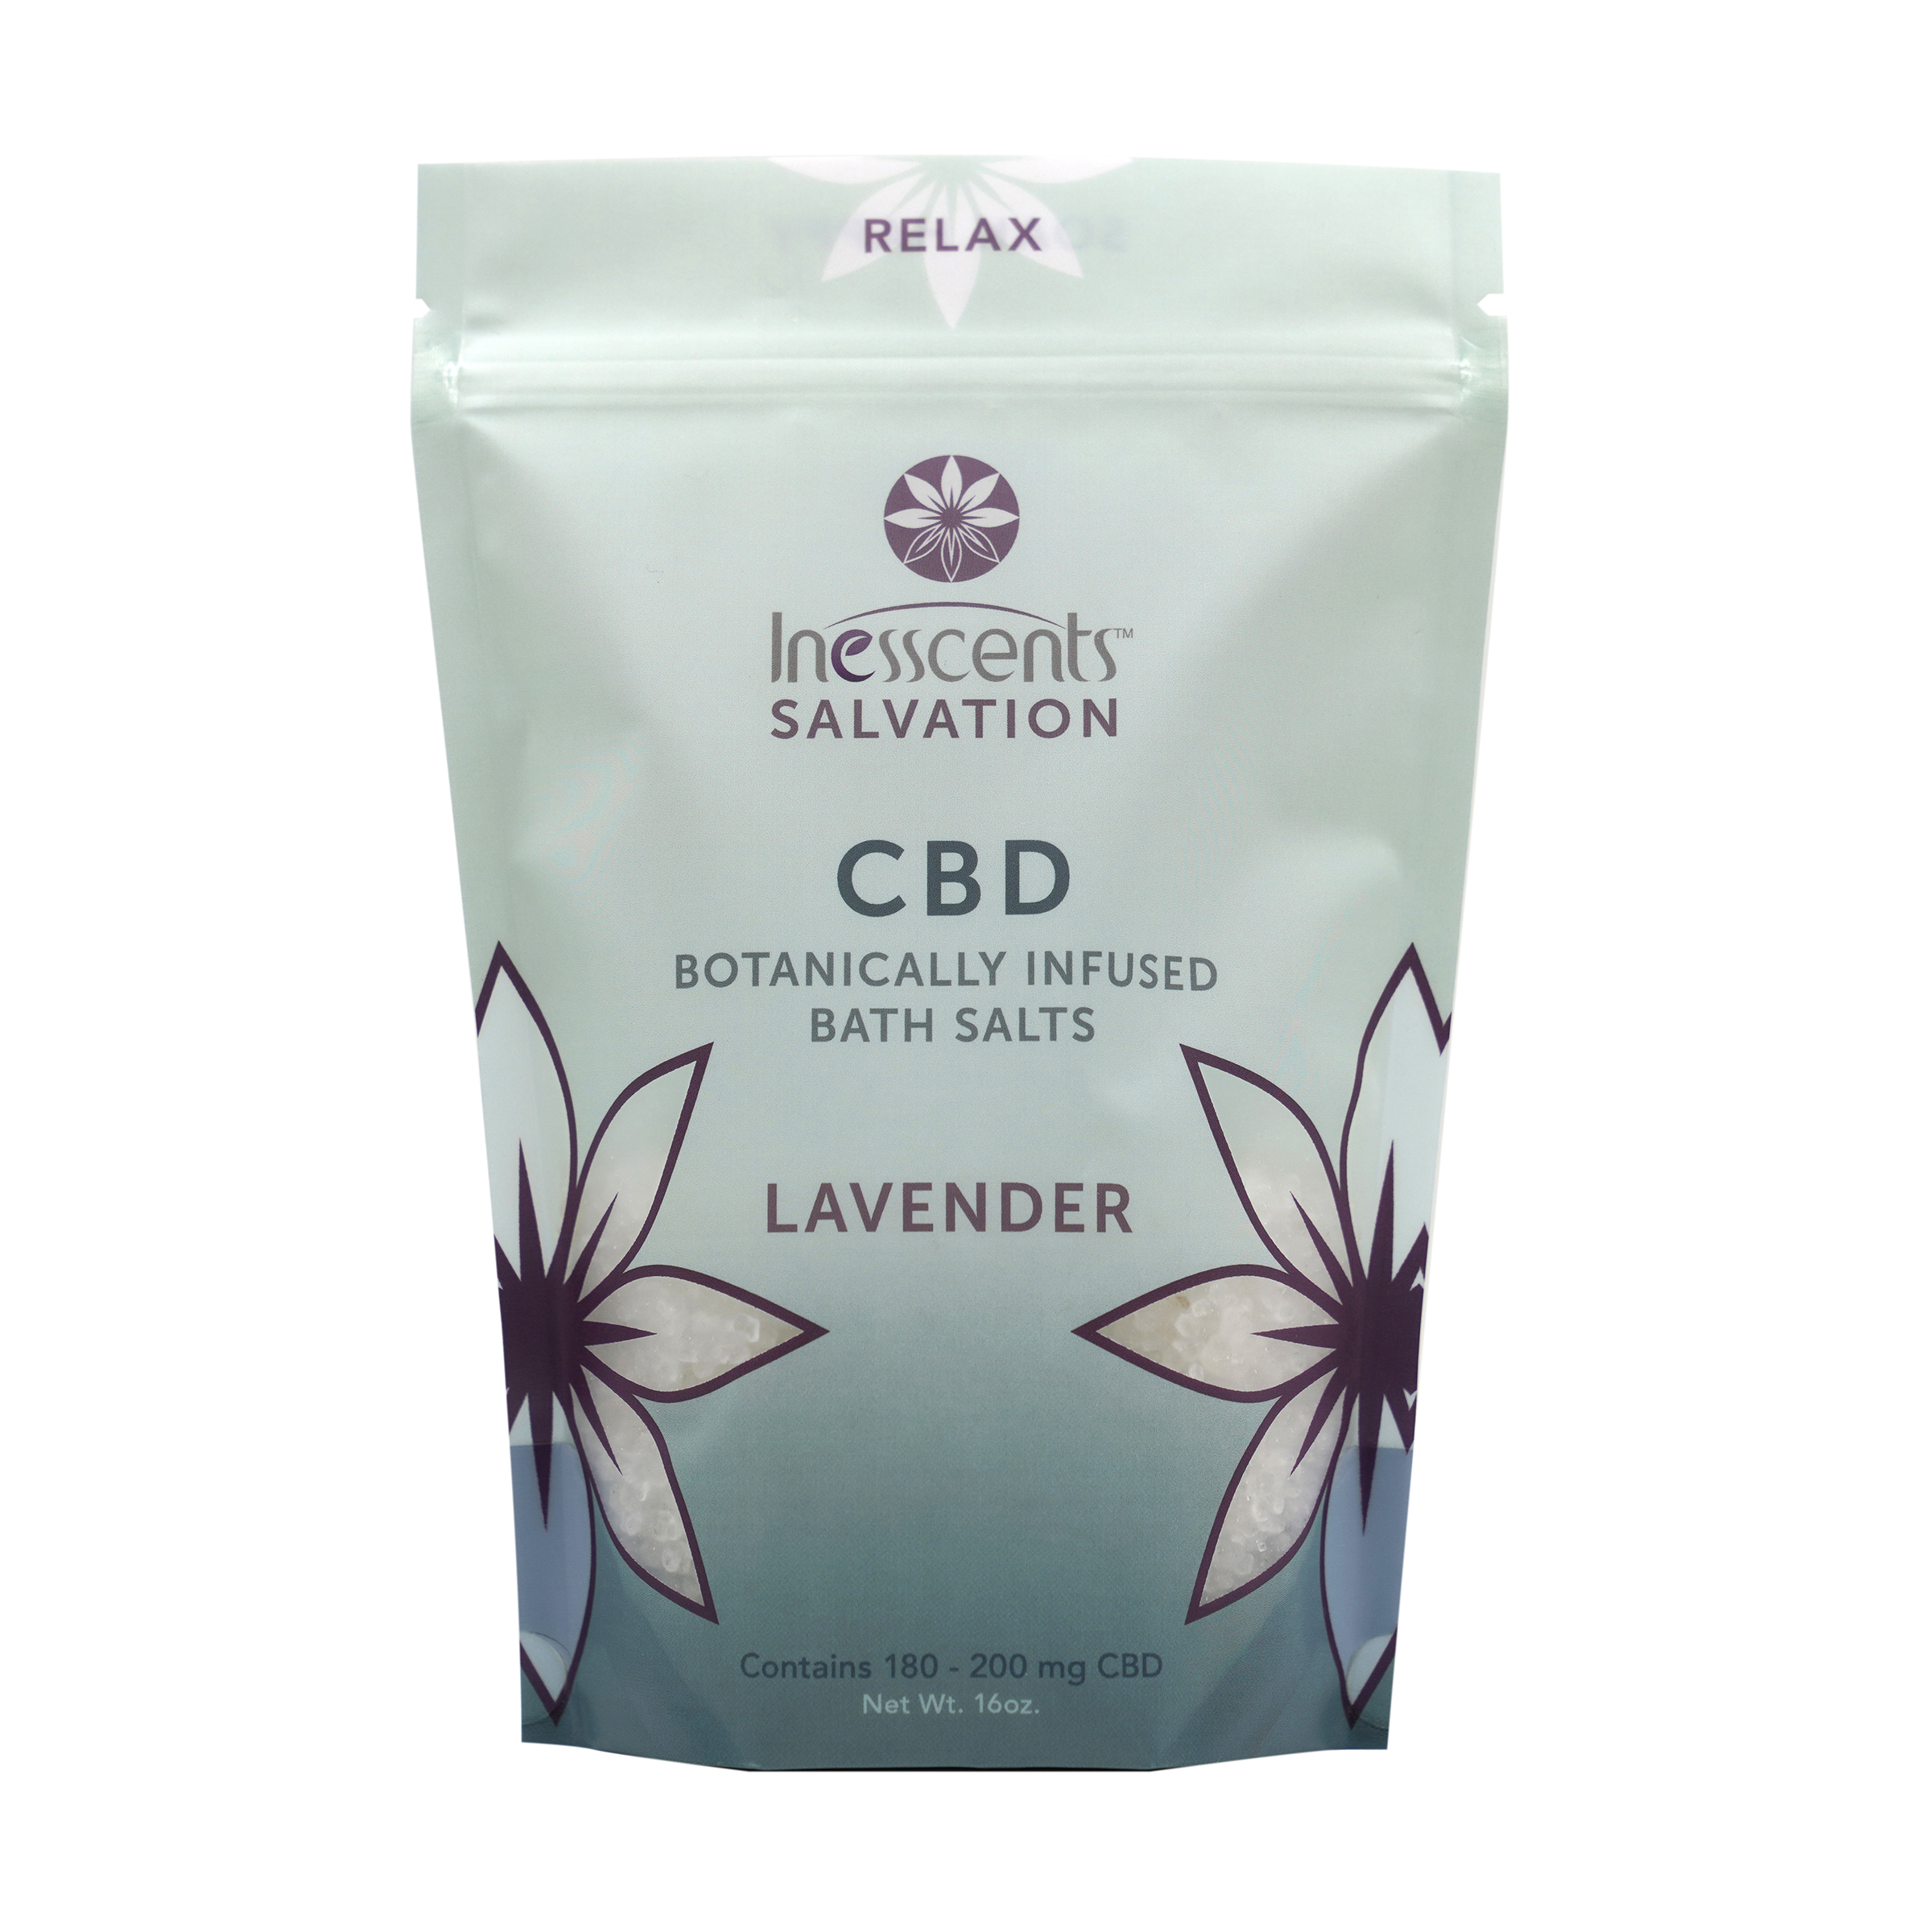 CBD Botanically Infused Bath Salts - Lavender 16oz